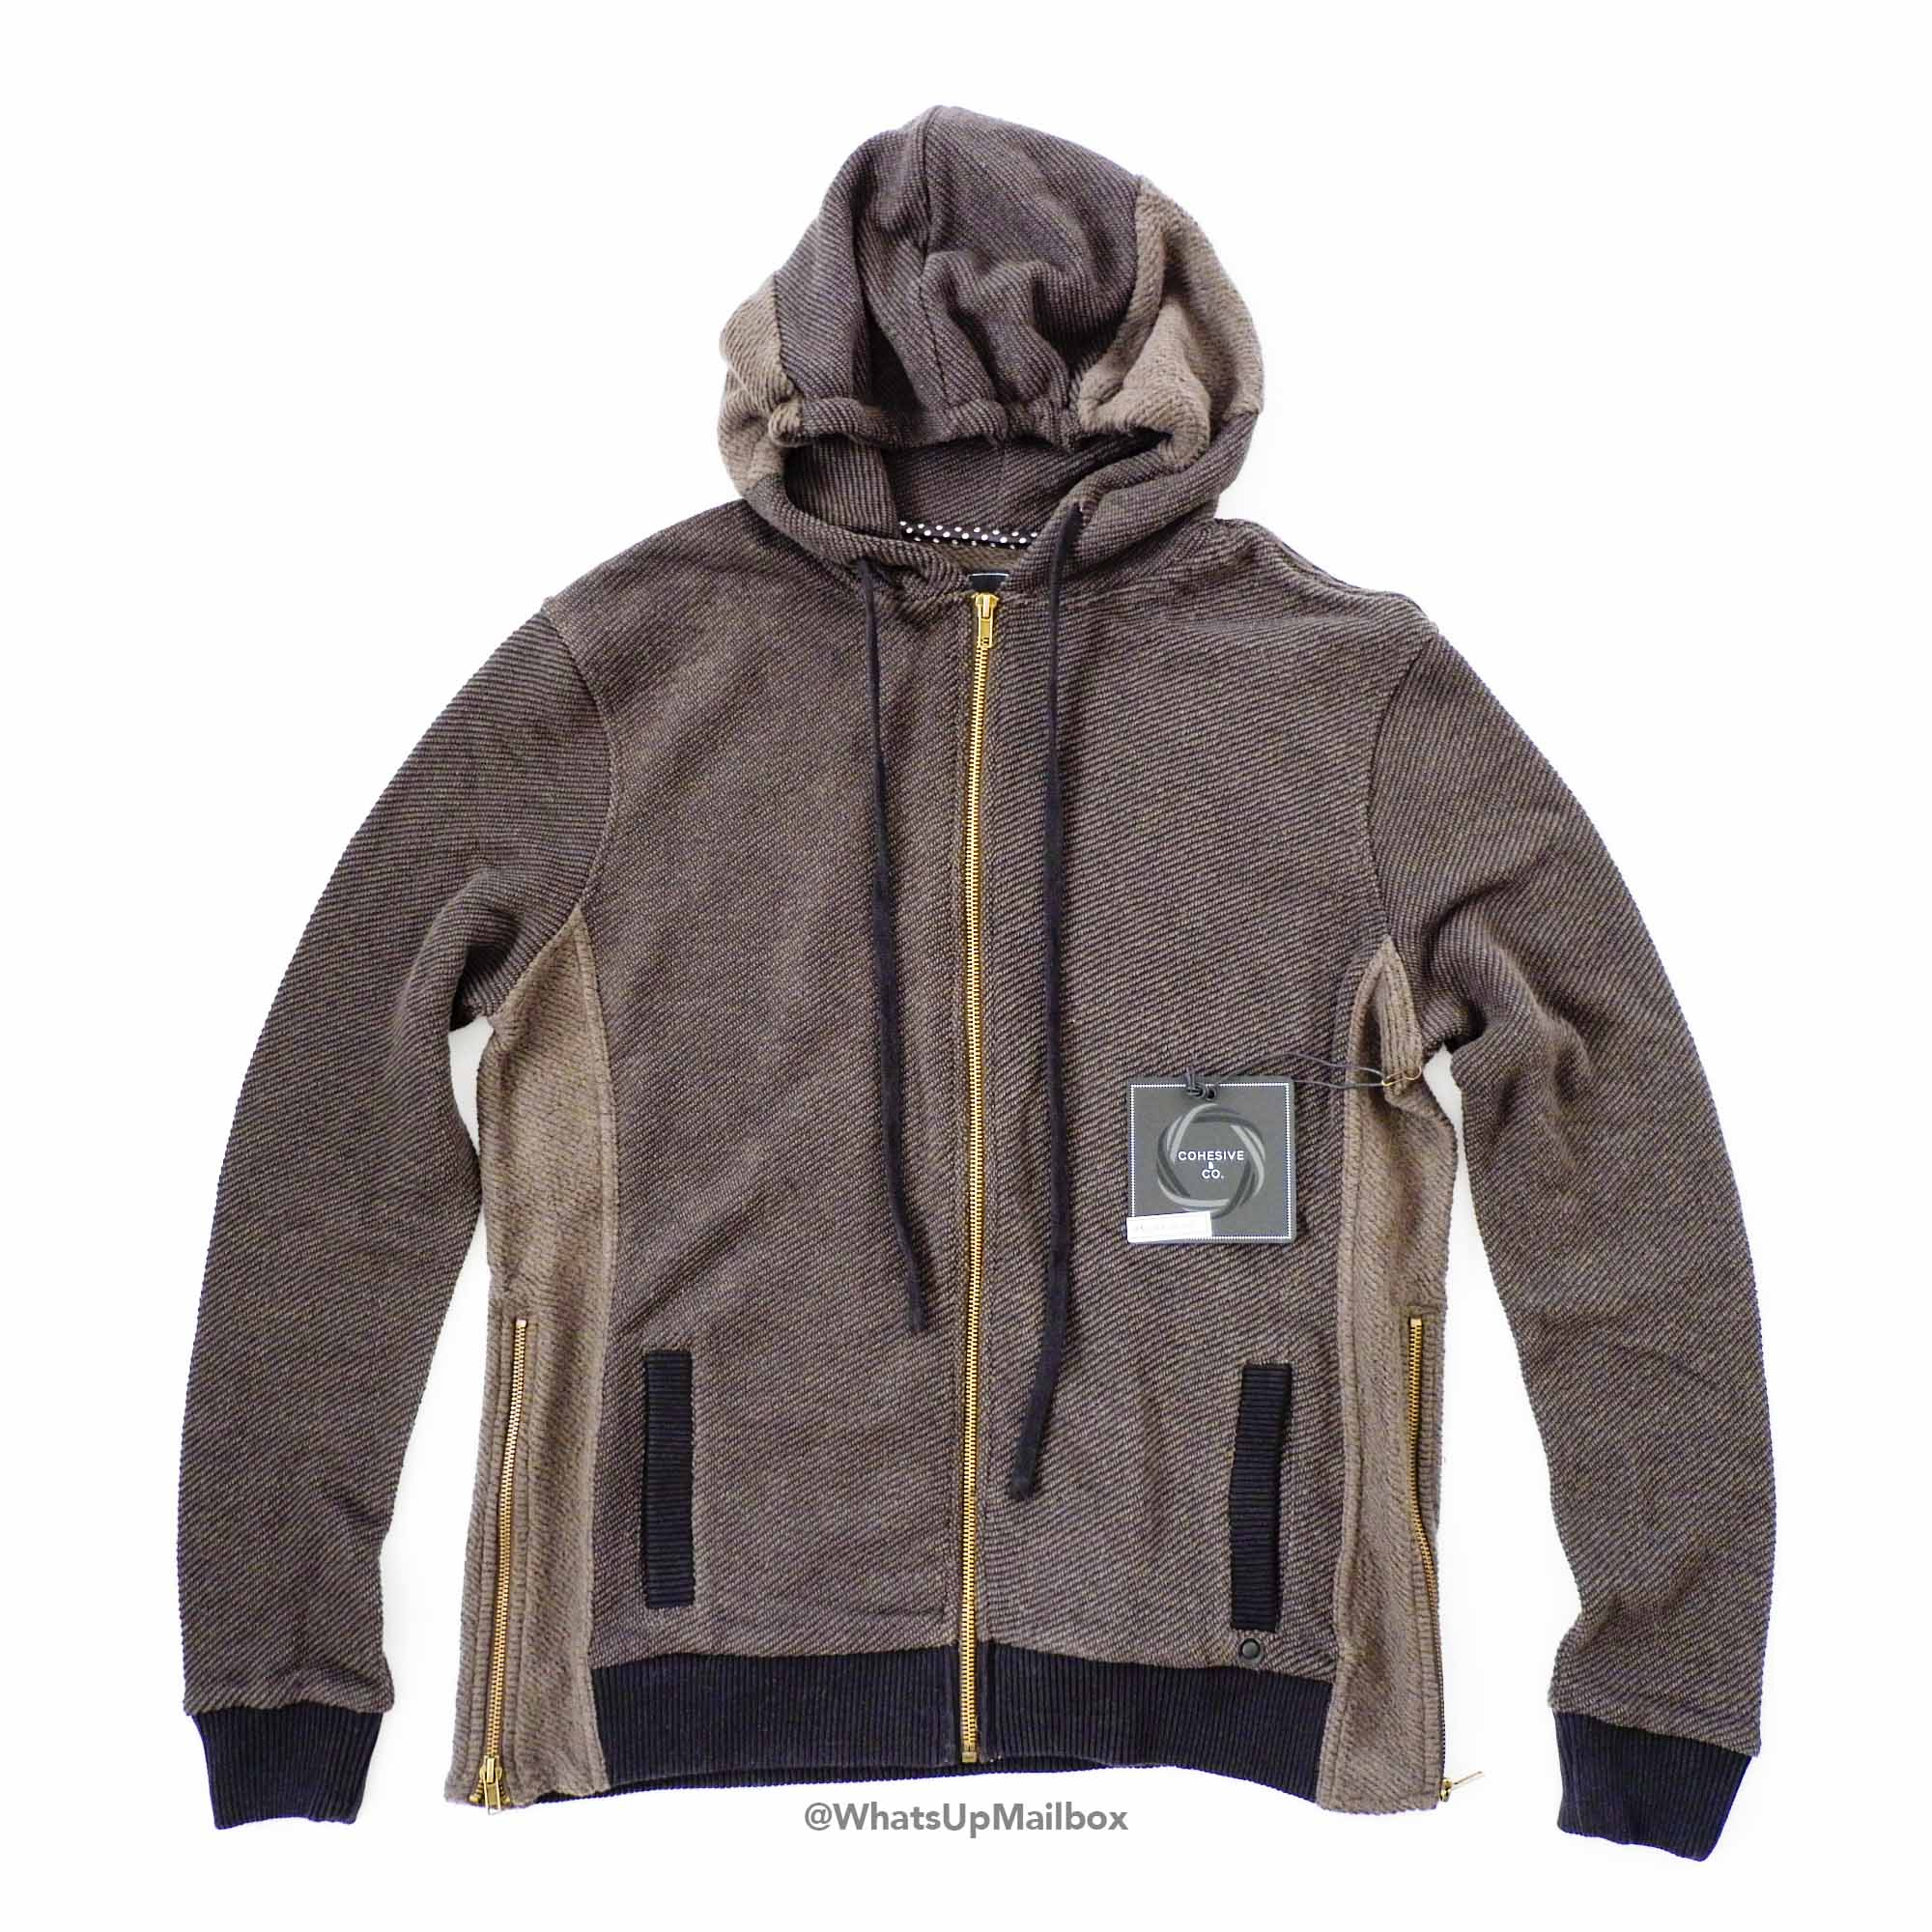 Trendy Butler - Cohesive & Co. Malo Zip Front Hoodie Army Sweater